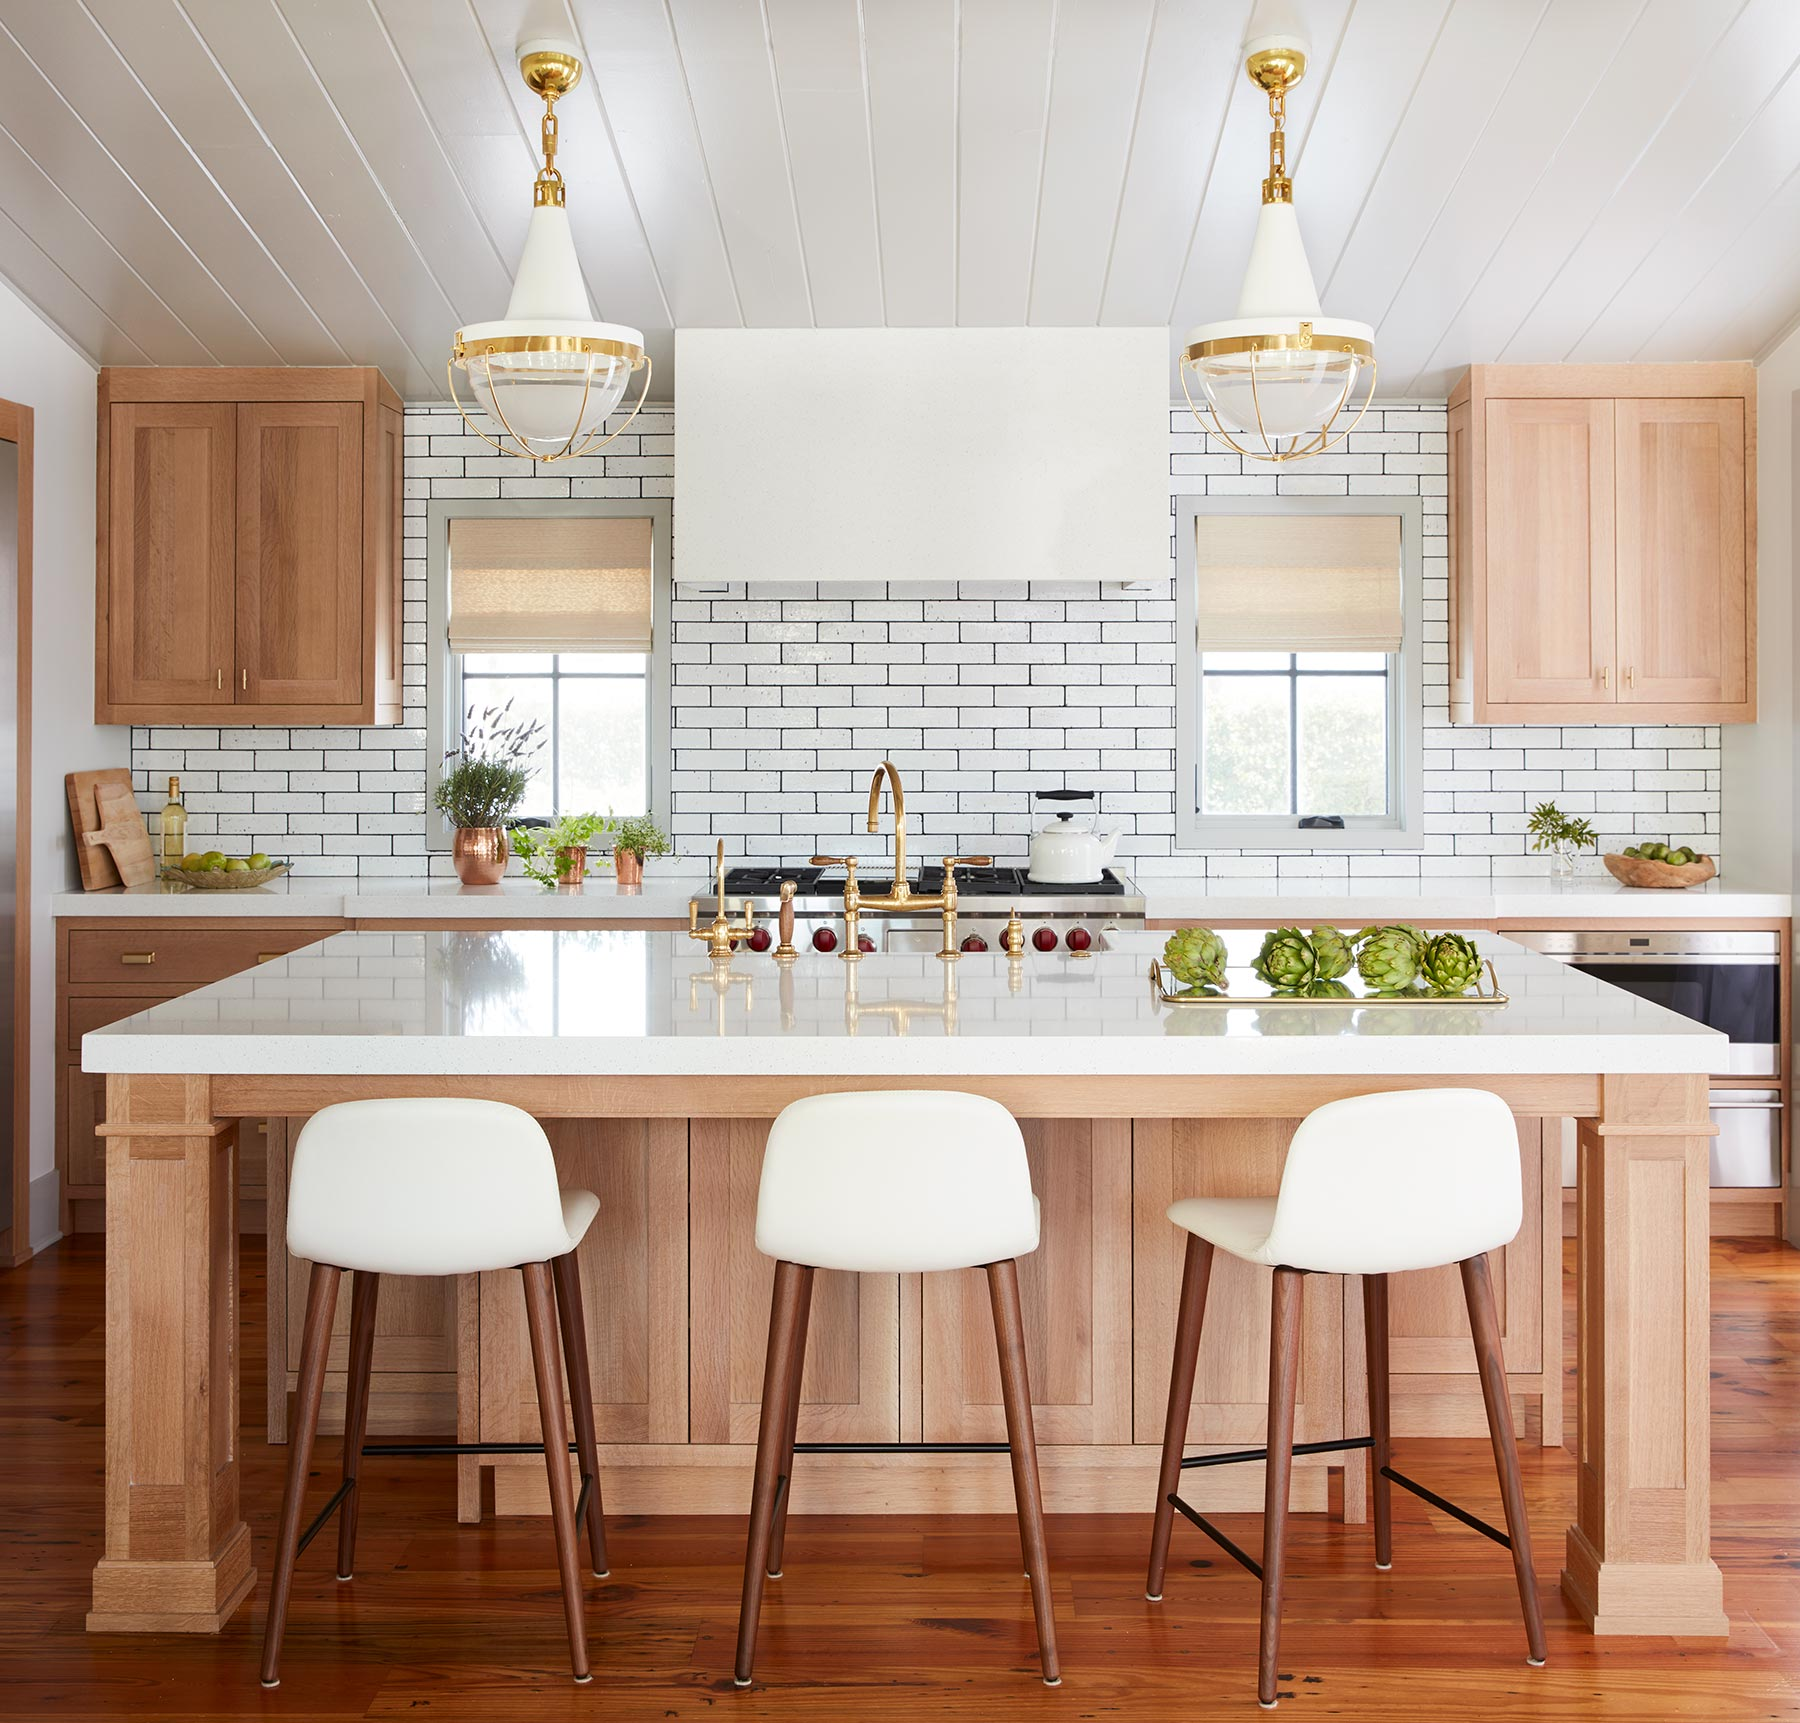 Andrew Jacksons Kitchen Cabinet: The Urban Electric Company